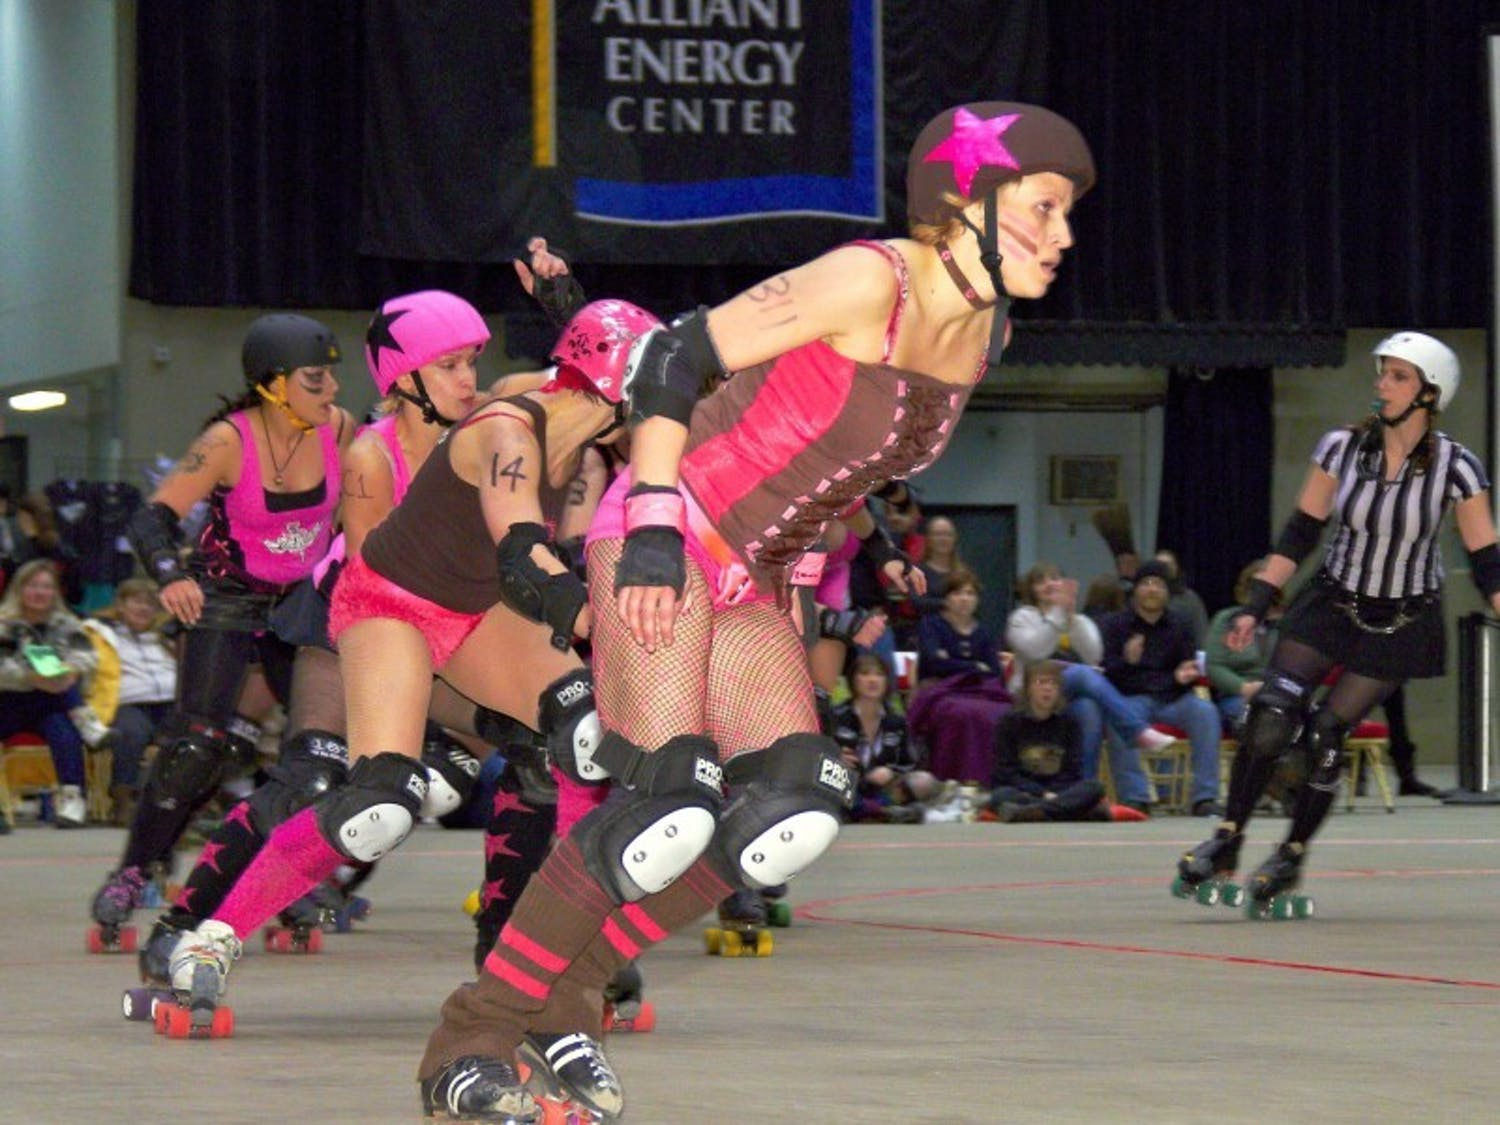 Chop Suzzy: Powerful in pink